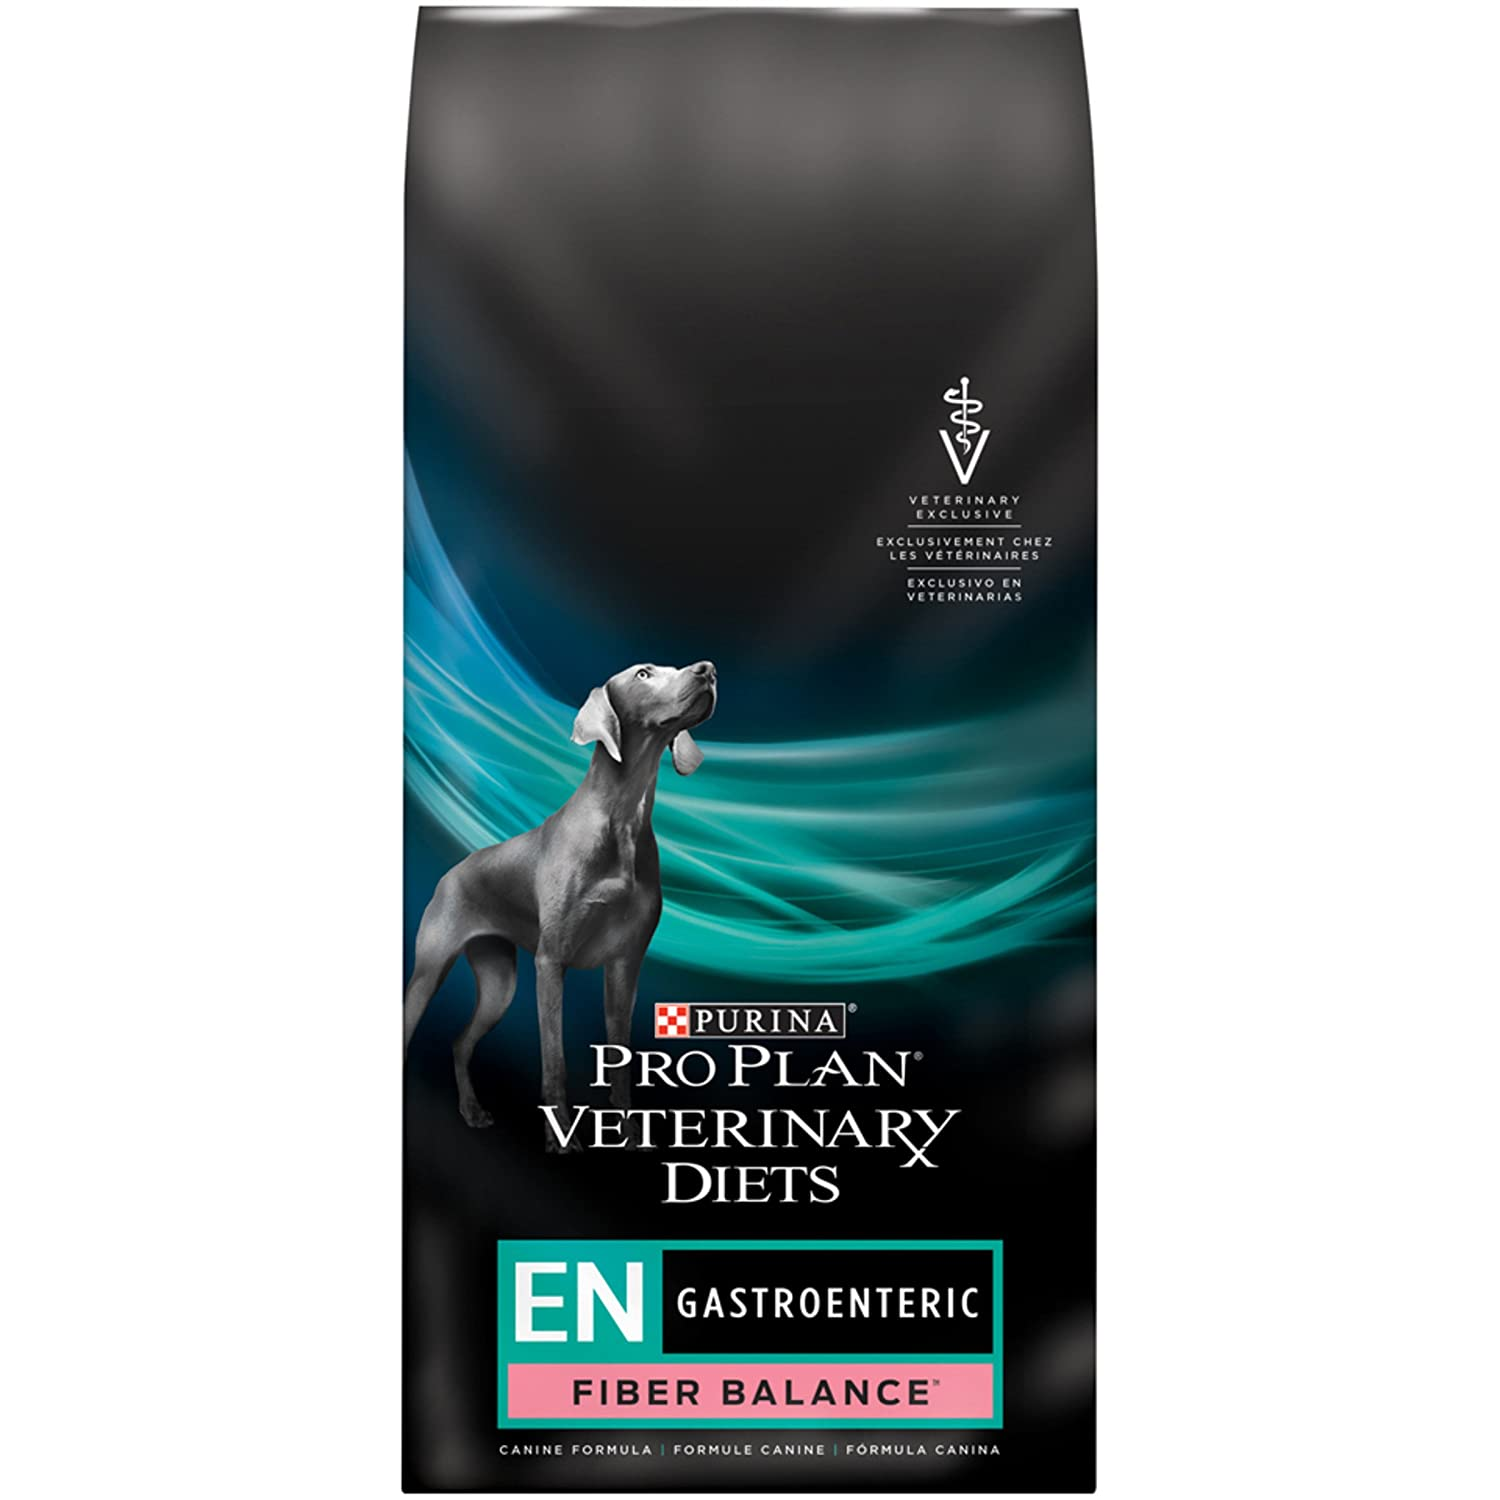 Purina Pro Plan Veterinary Diets Fiber Balance